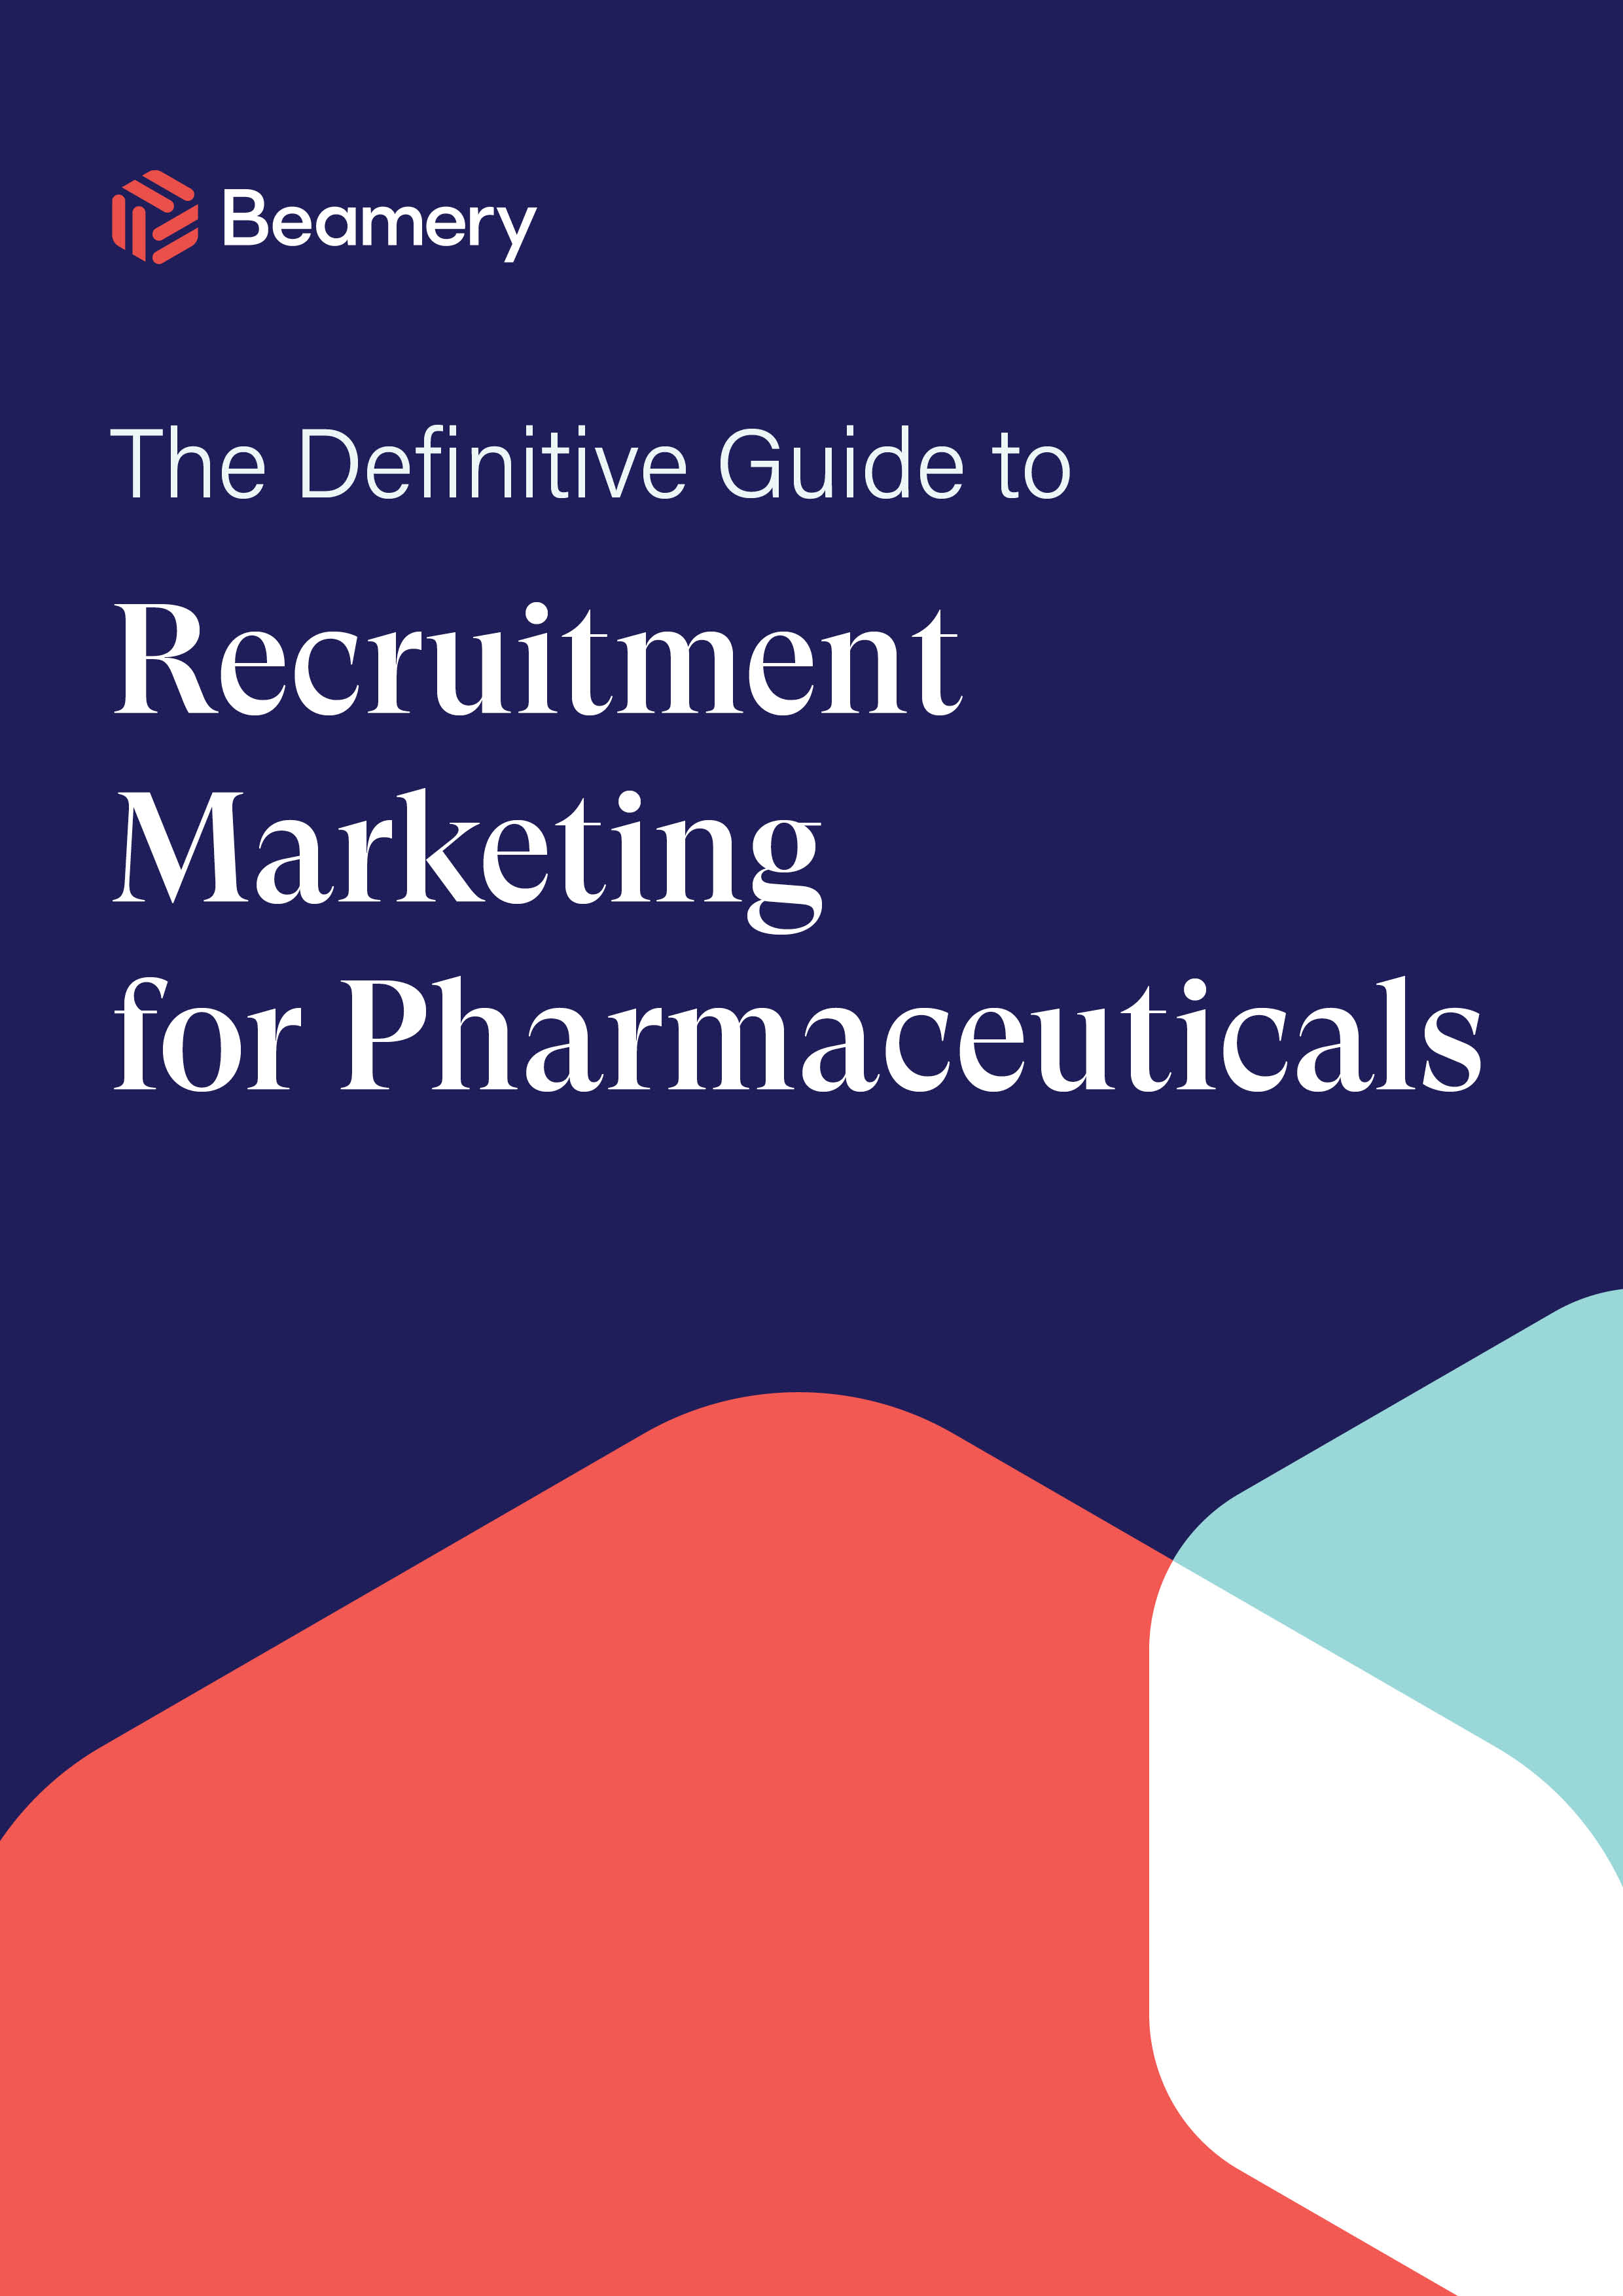 The Definitive Guide to Recruitment Marketing for Pharmaceutical